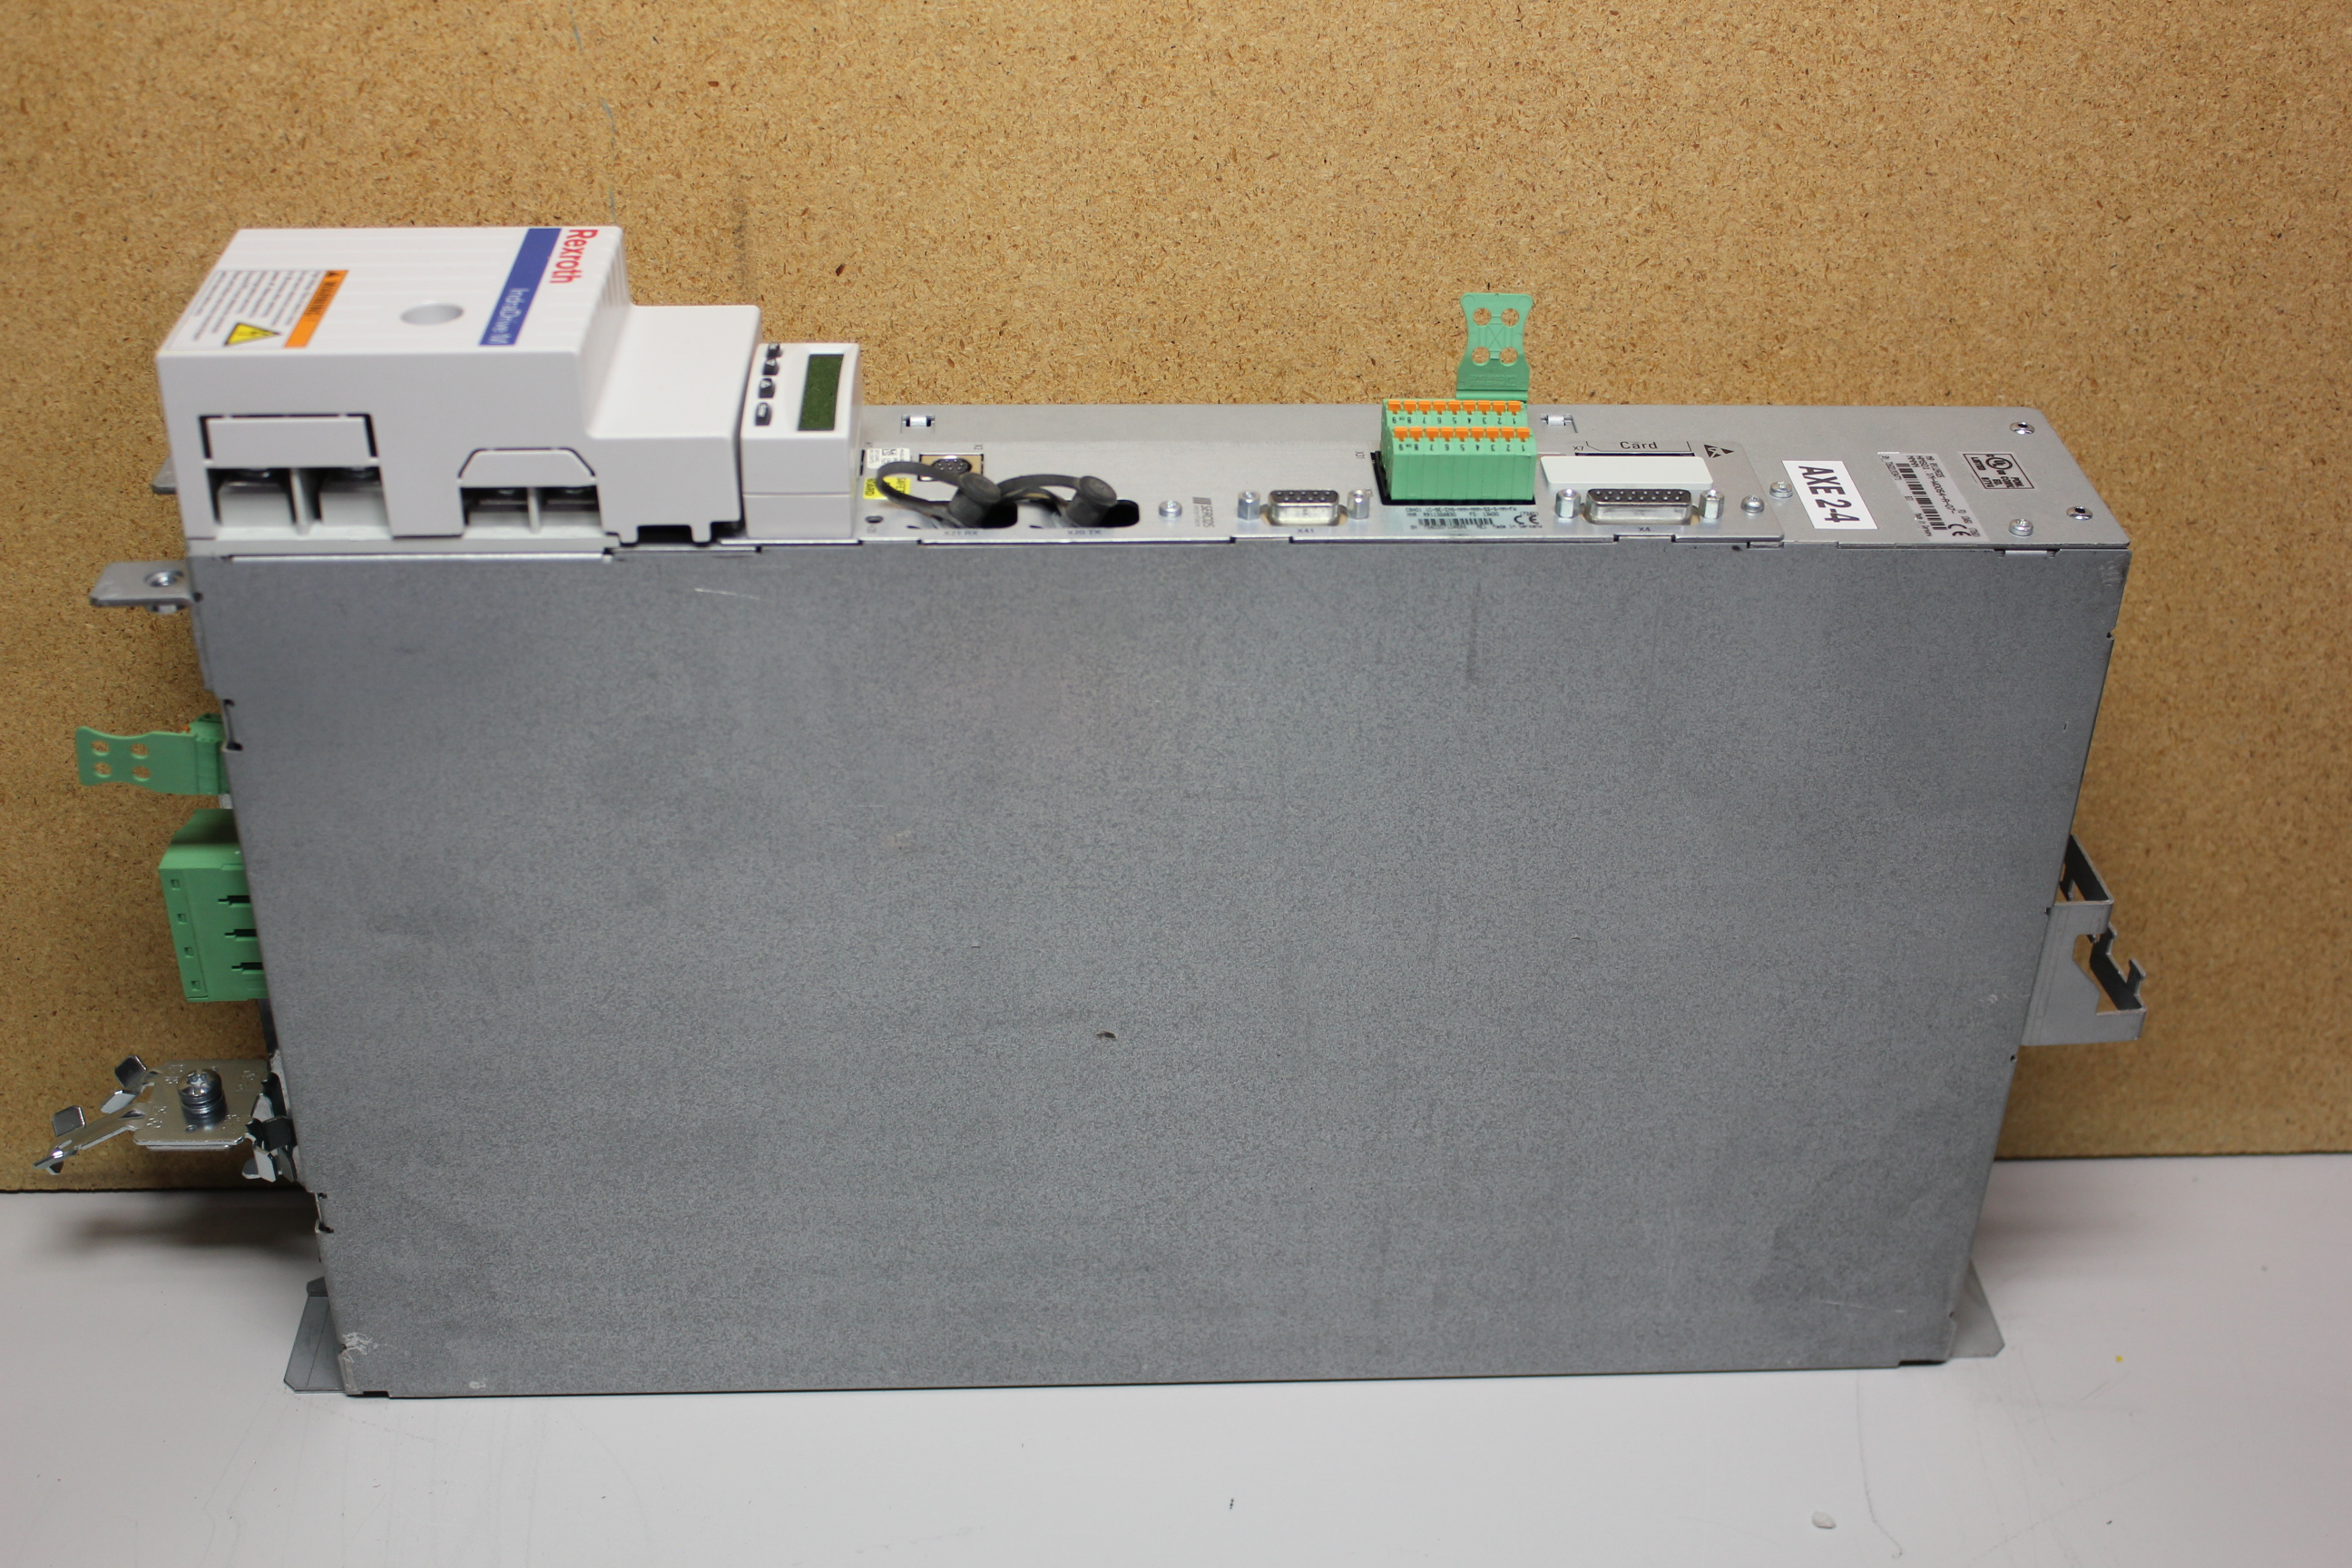 REXROTH INDRADRIVE M SINGLE AXIS INVERTER WITH SERCOS MODULE